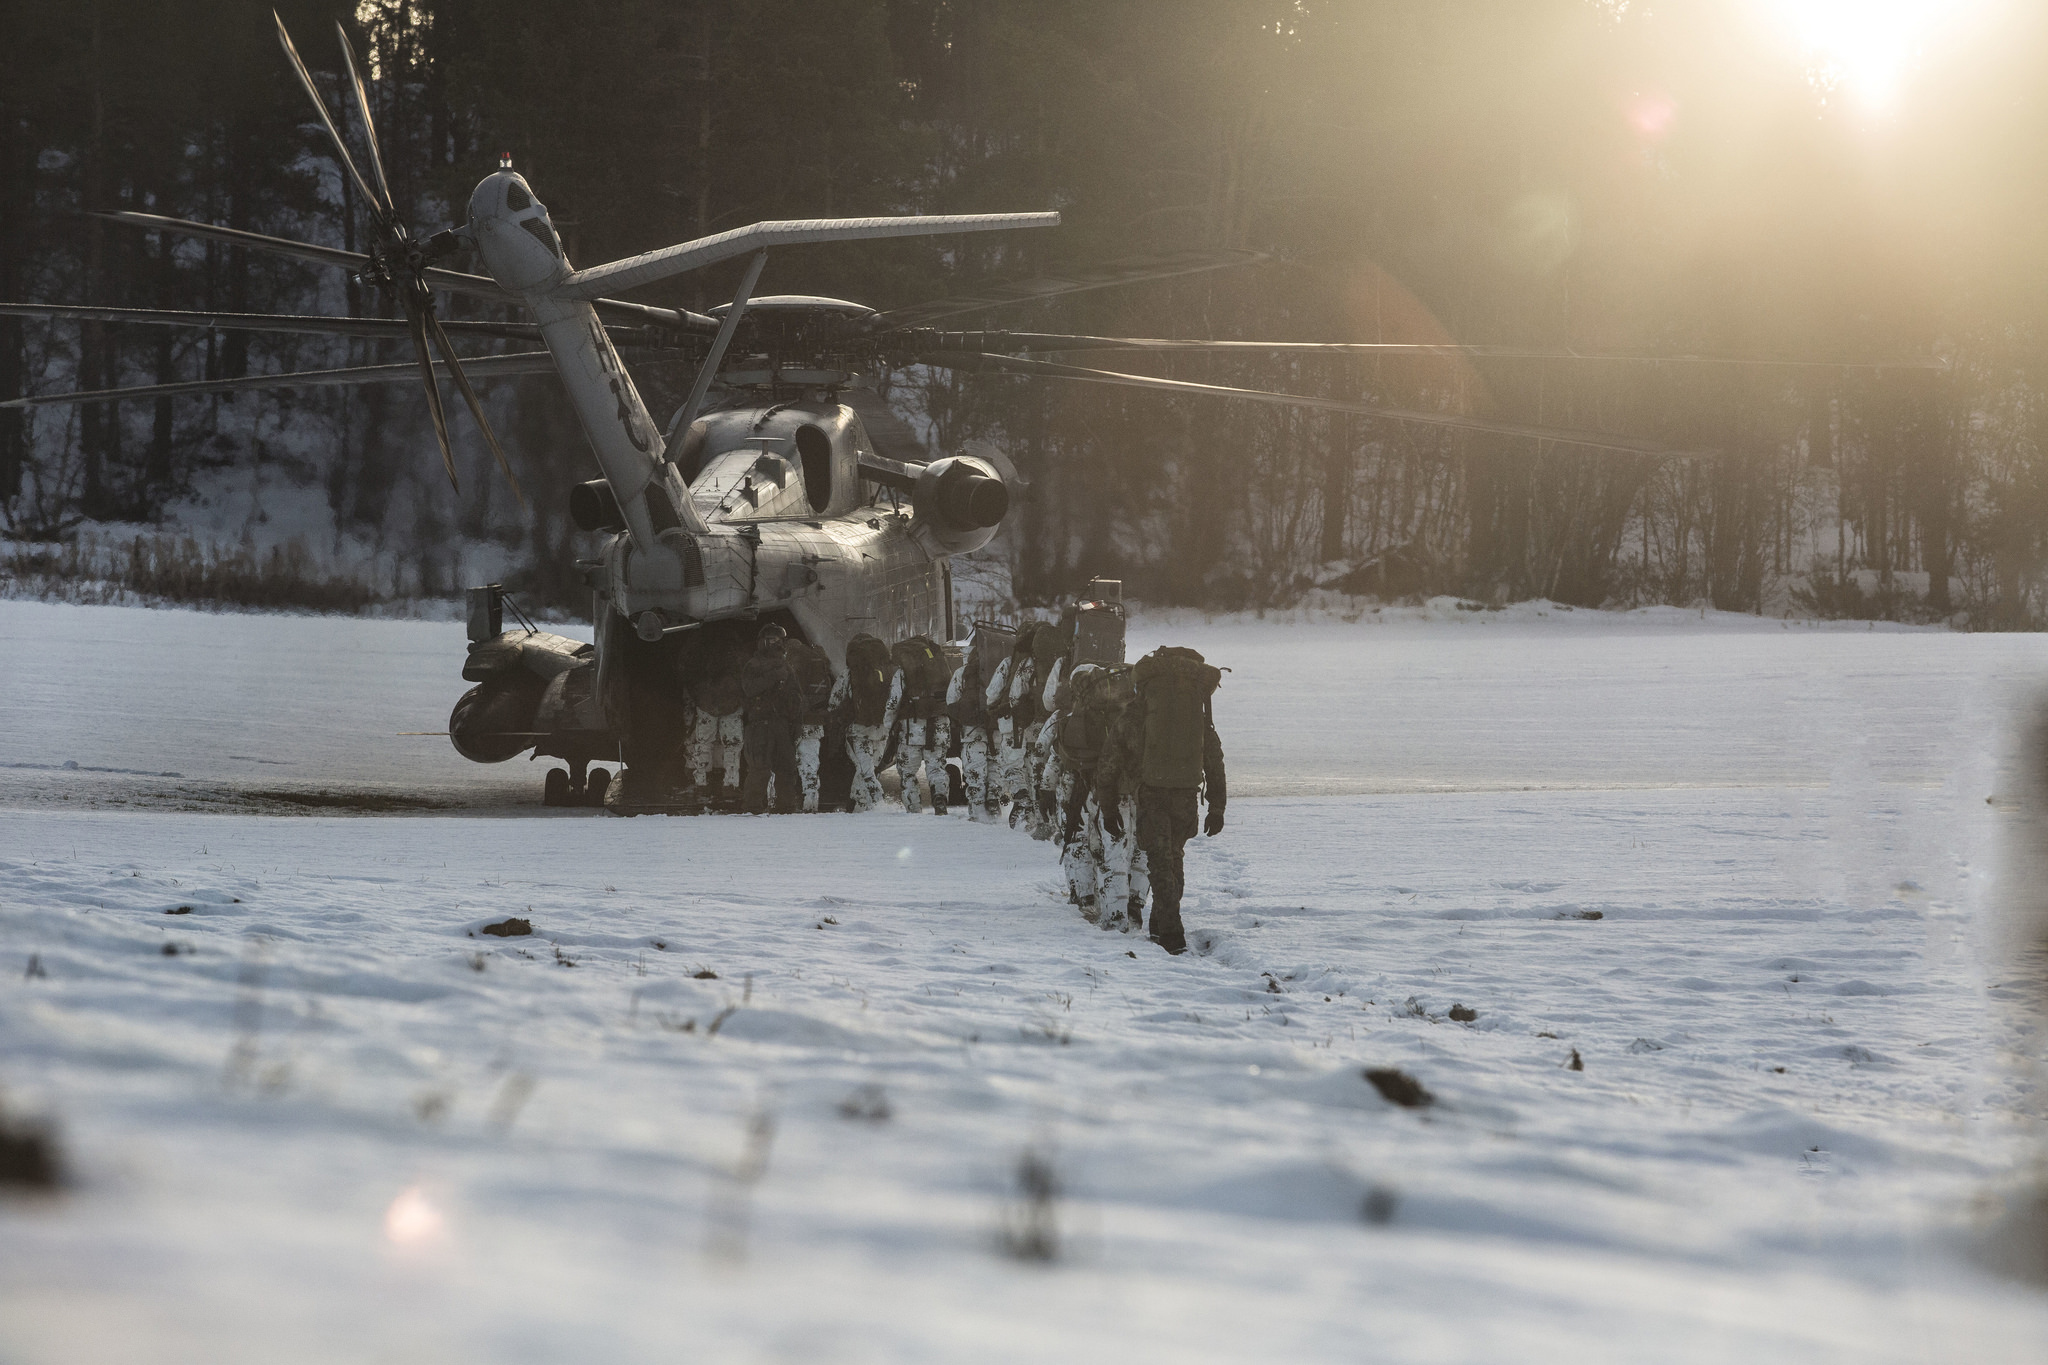 German soldiers board a U.S. Marine Corps CH-53E Super Stallion helicopter during cold-weather training in support of Exercise Trident Juncture 18 in Dalsbygda, Norway, Nov. 1, 2018. (Cpl. David Delgadillo/Marine Corps)